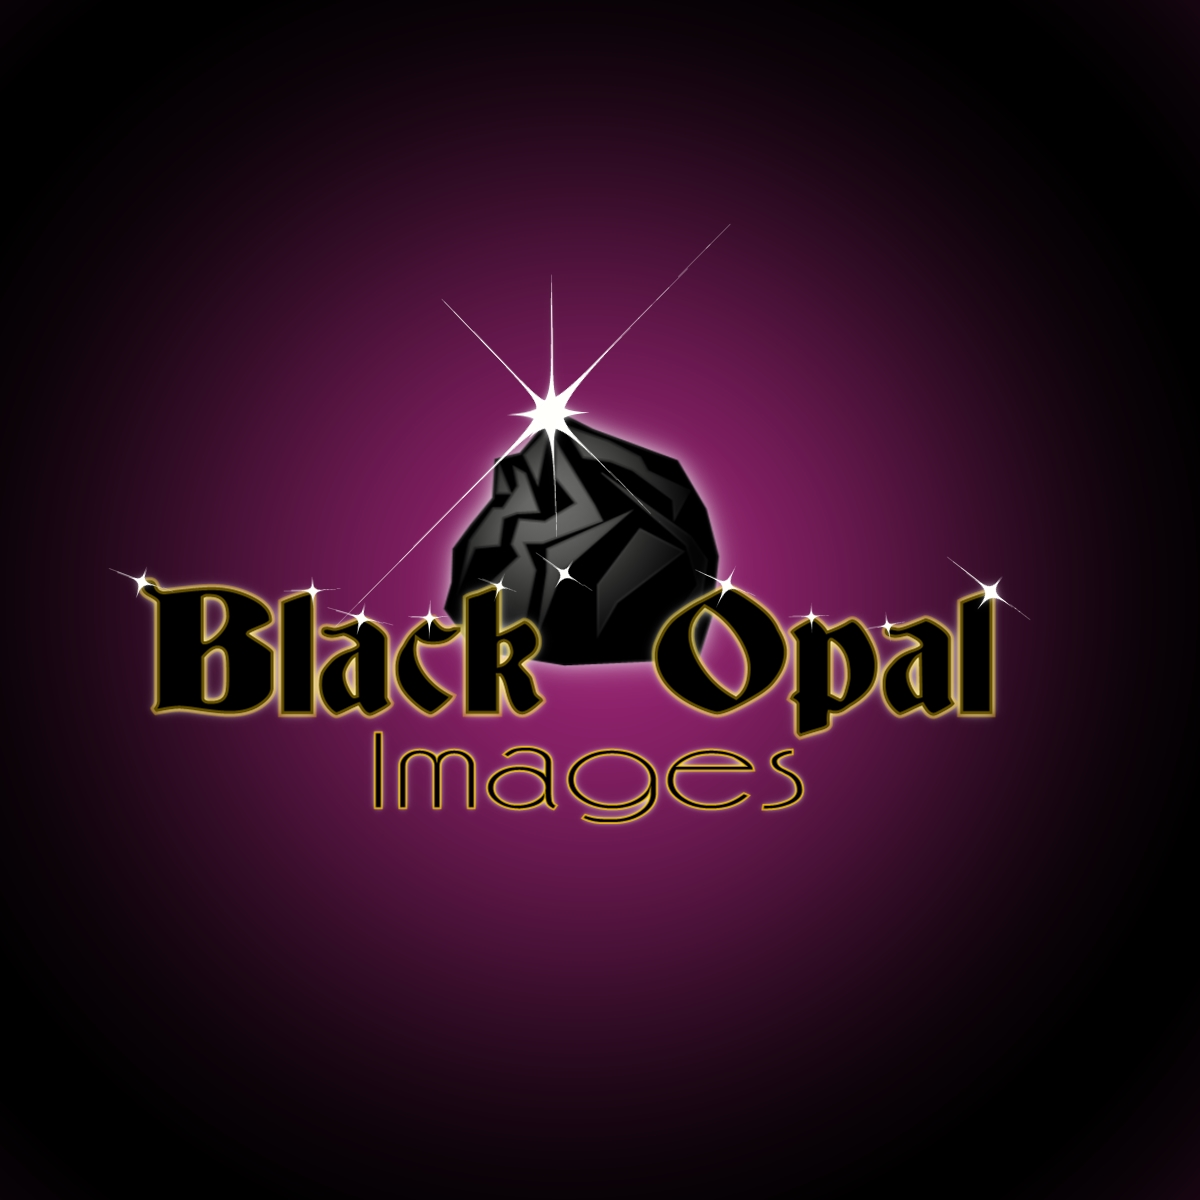 Logo Design by Joseph calunsag Cagaanan - Entry No. 16 in the Logo Design Contest New Logo Design for Black Opal Images.